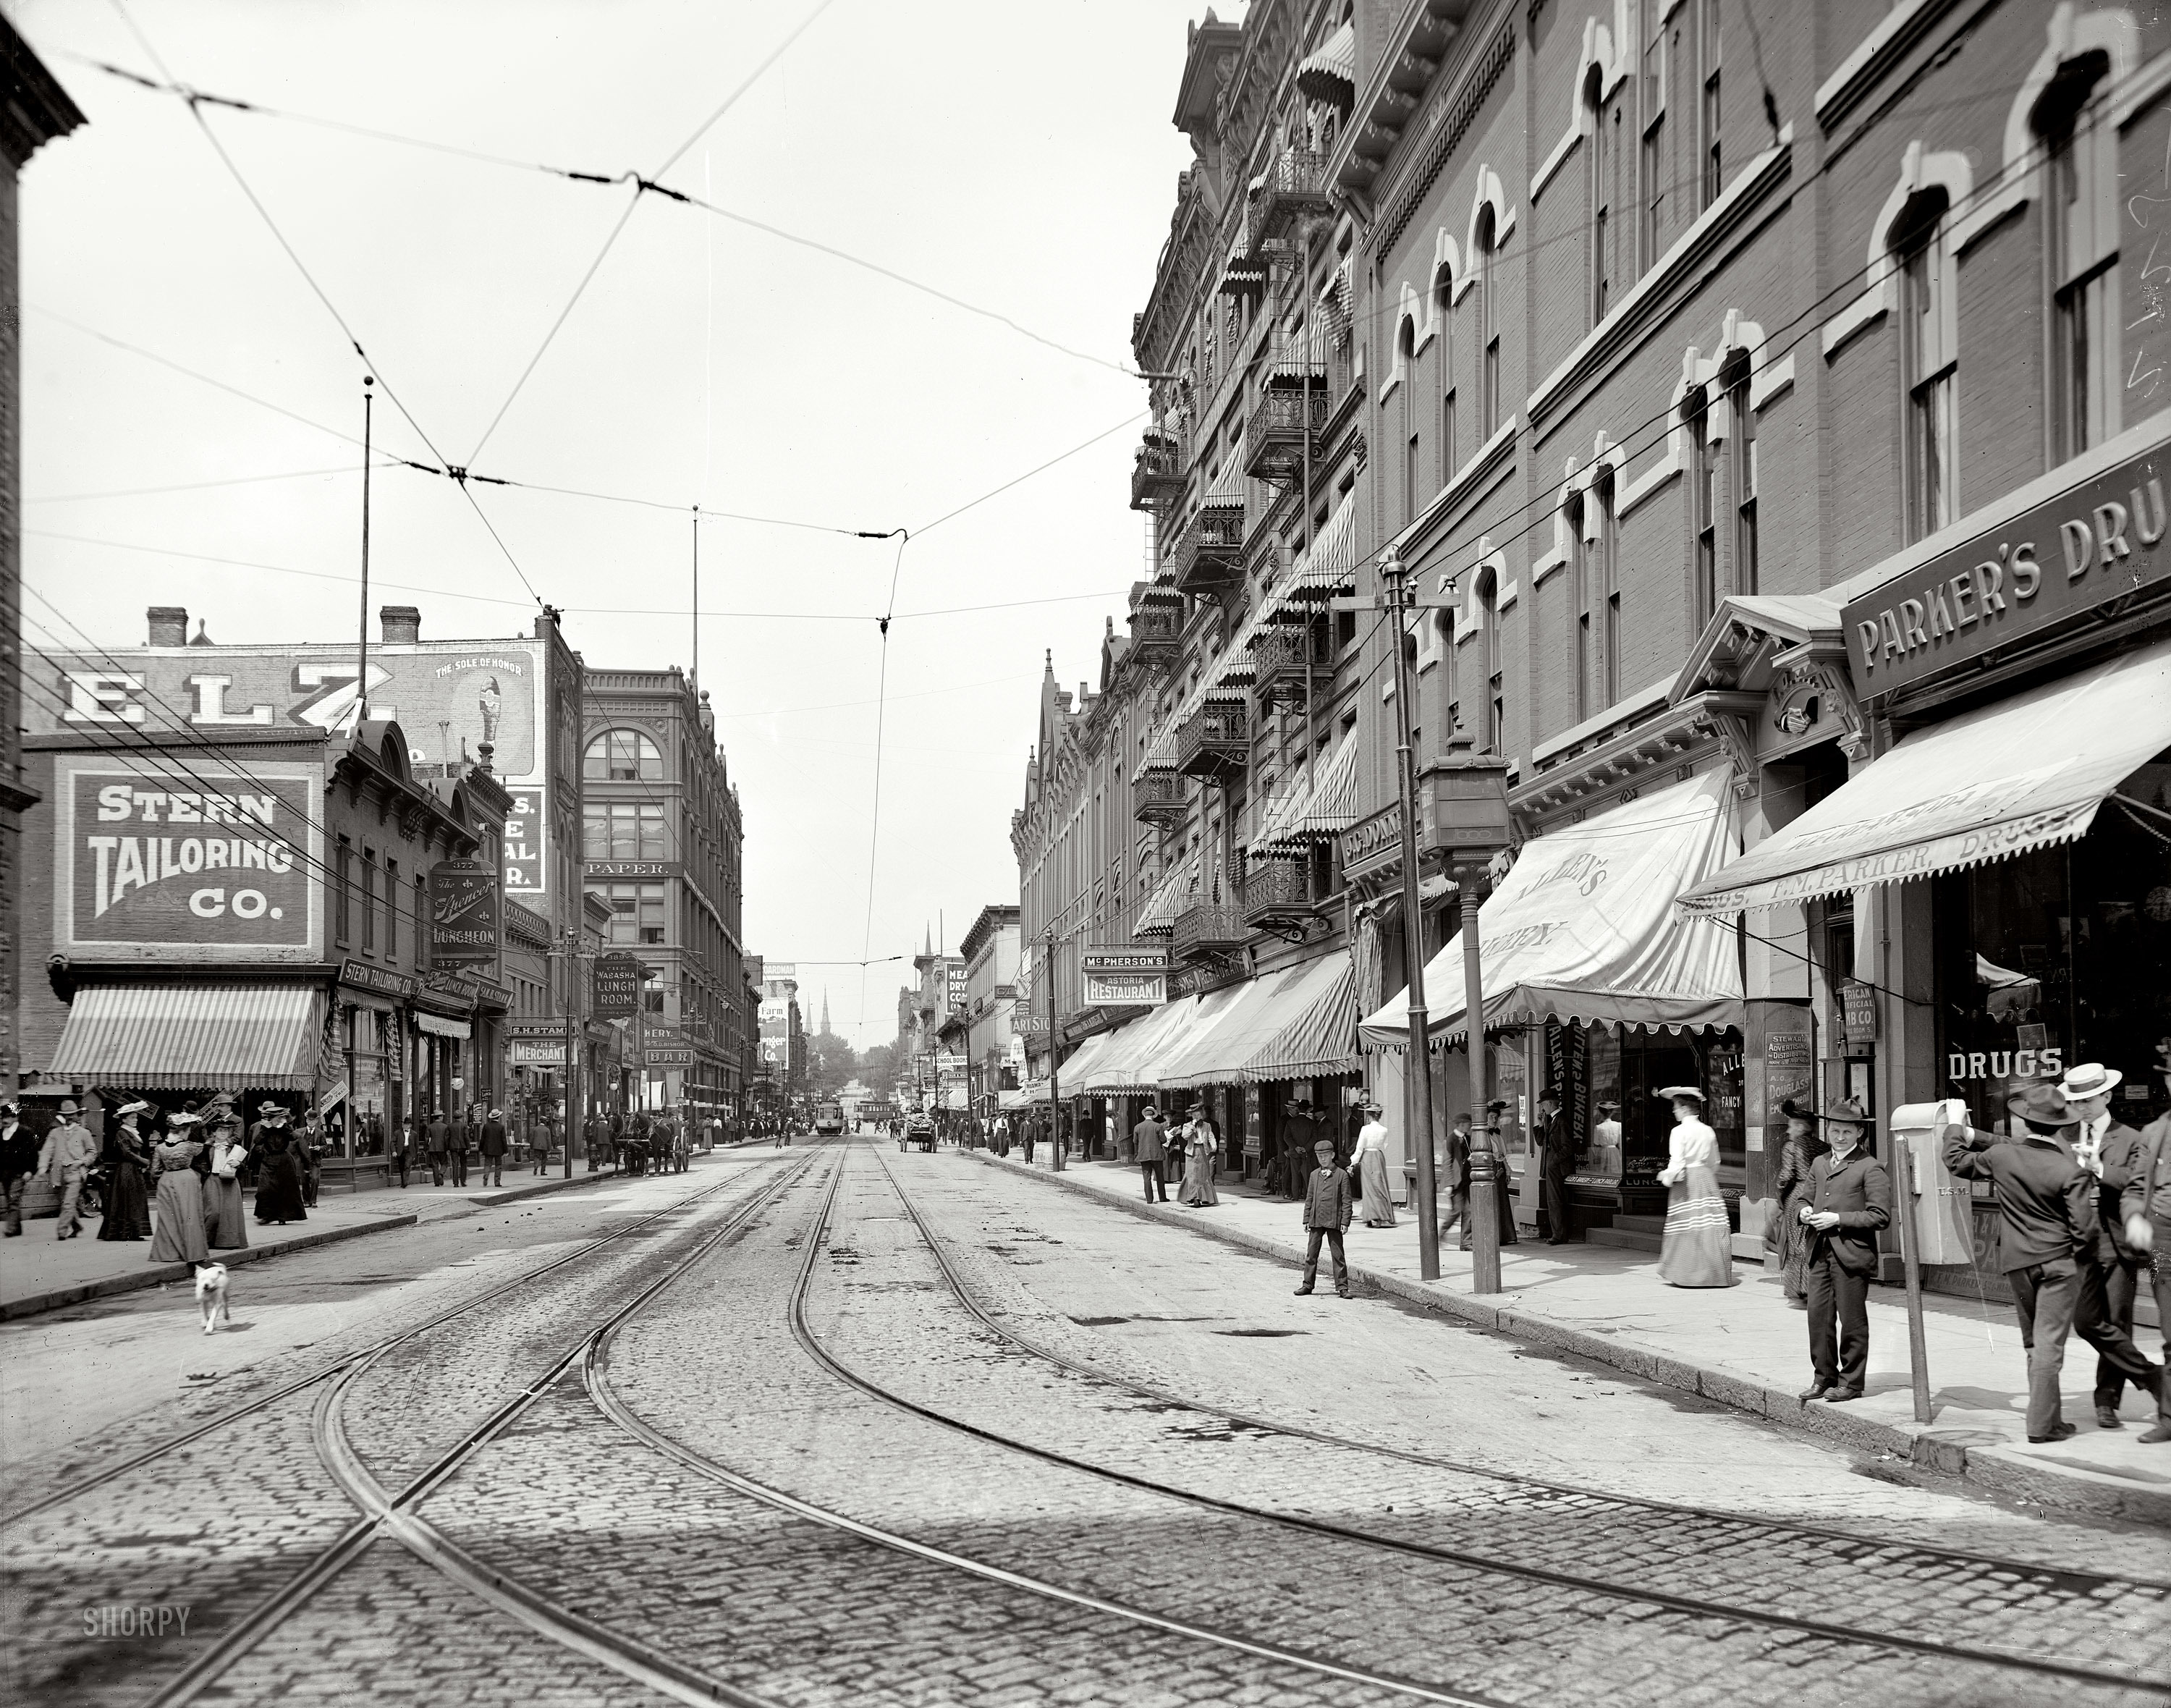 streets vintage grayscale monochrome HD Wallpaper